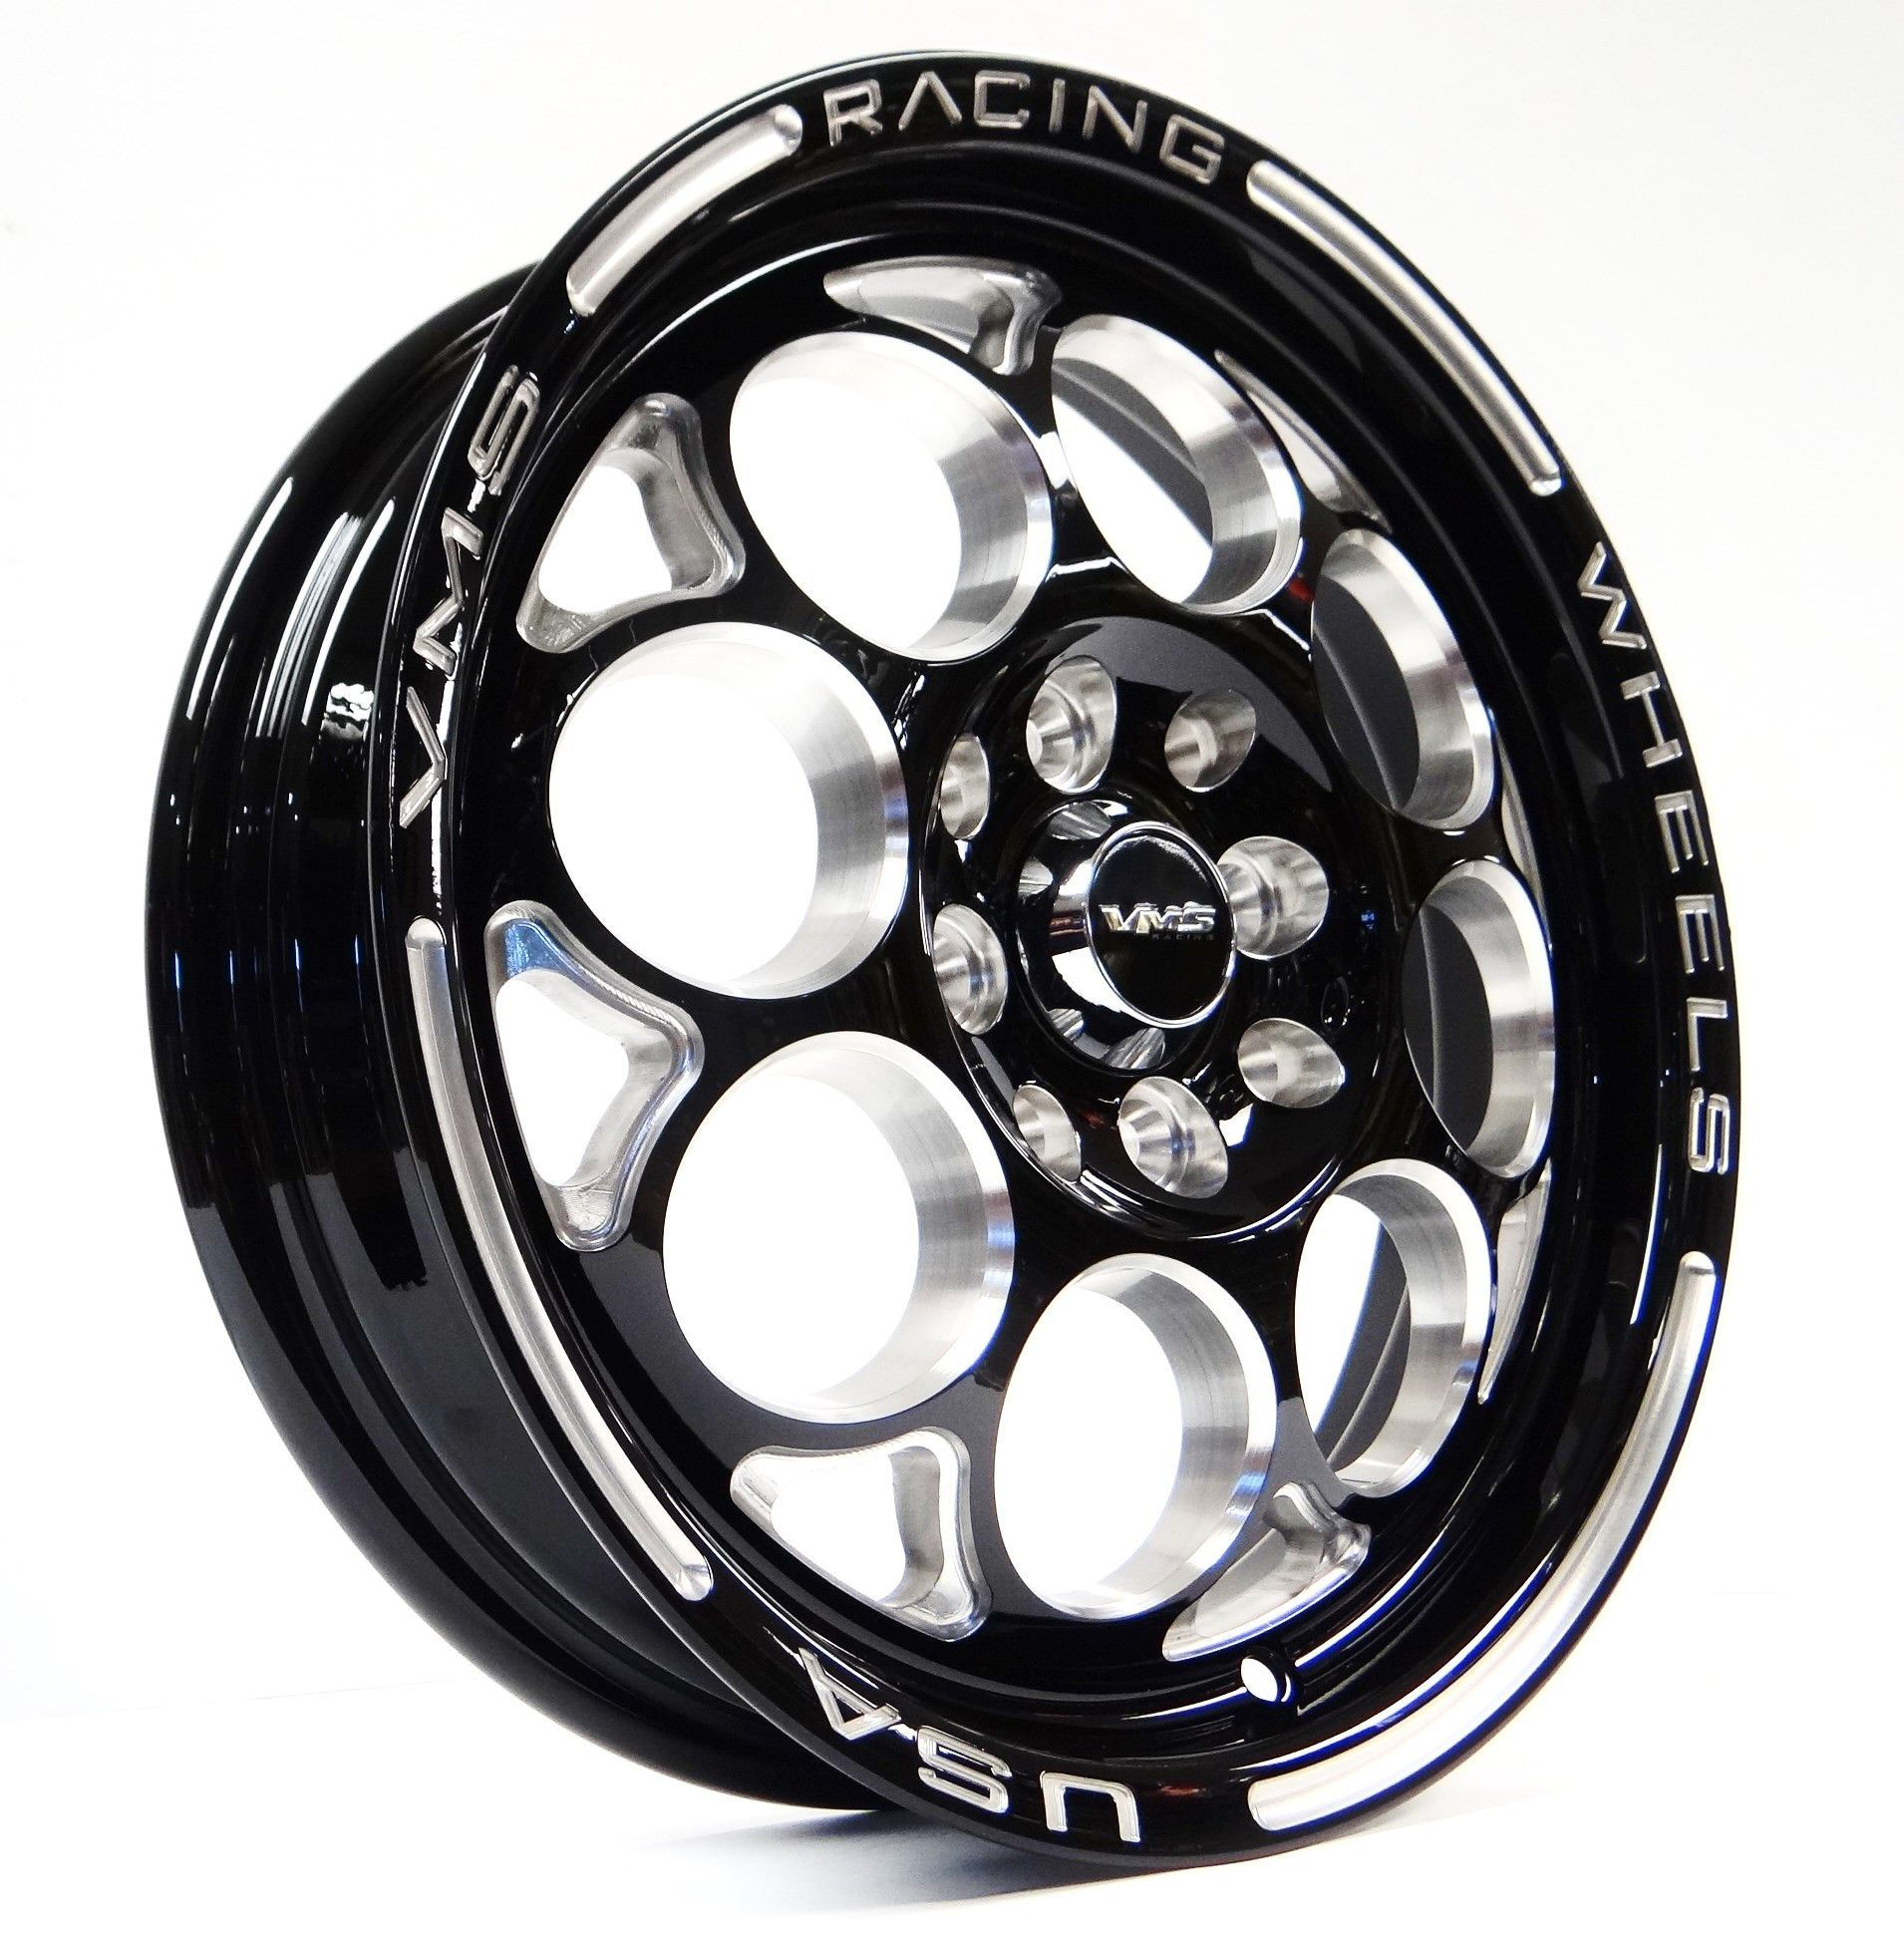 REAR Or FRONT DRAG RACE MODULO WHEEL 15X3.5 4X100/114.3 10